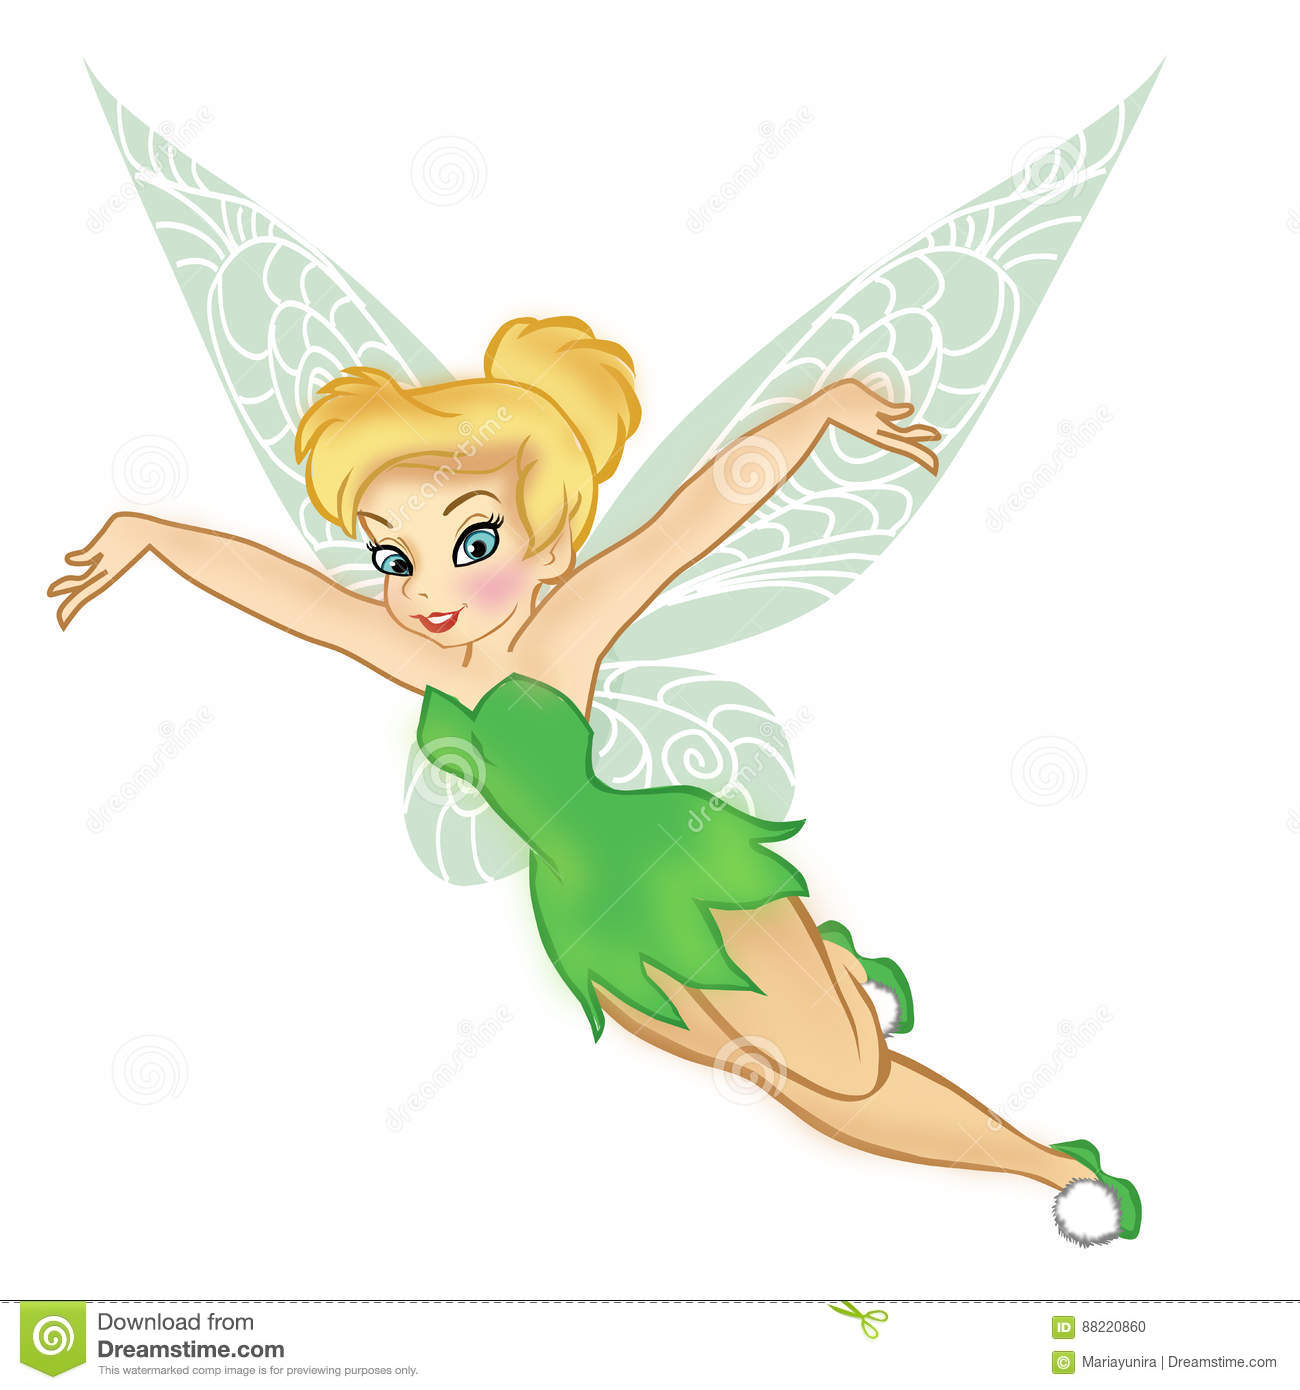 tinkerbell editorial image. illustration of pretty, movie - 88220860